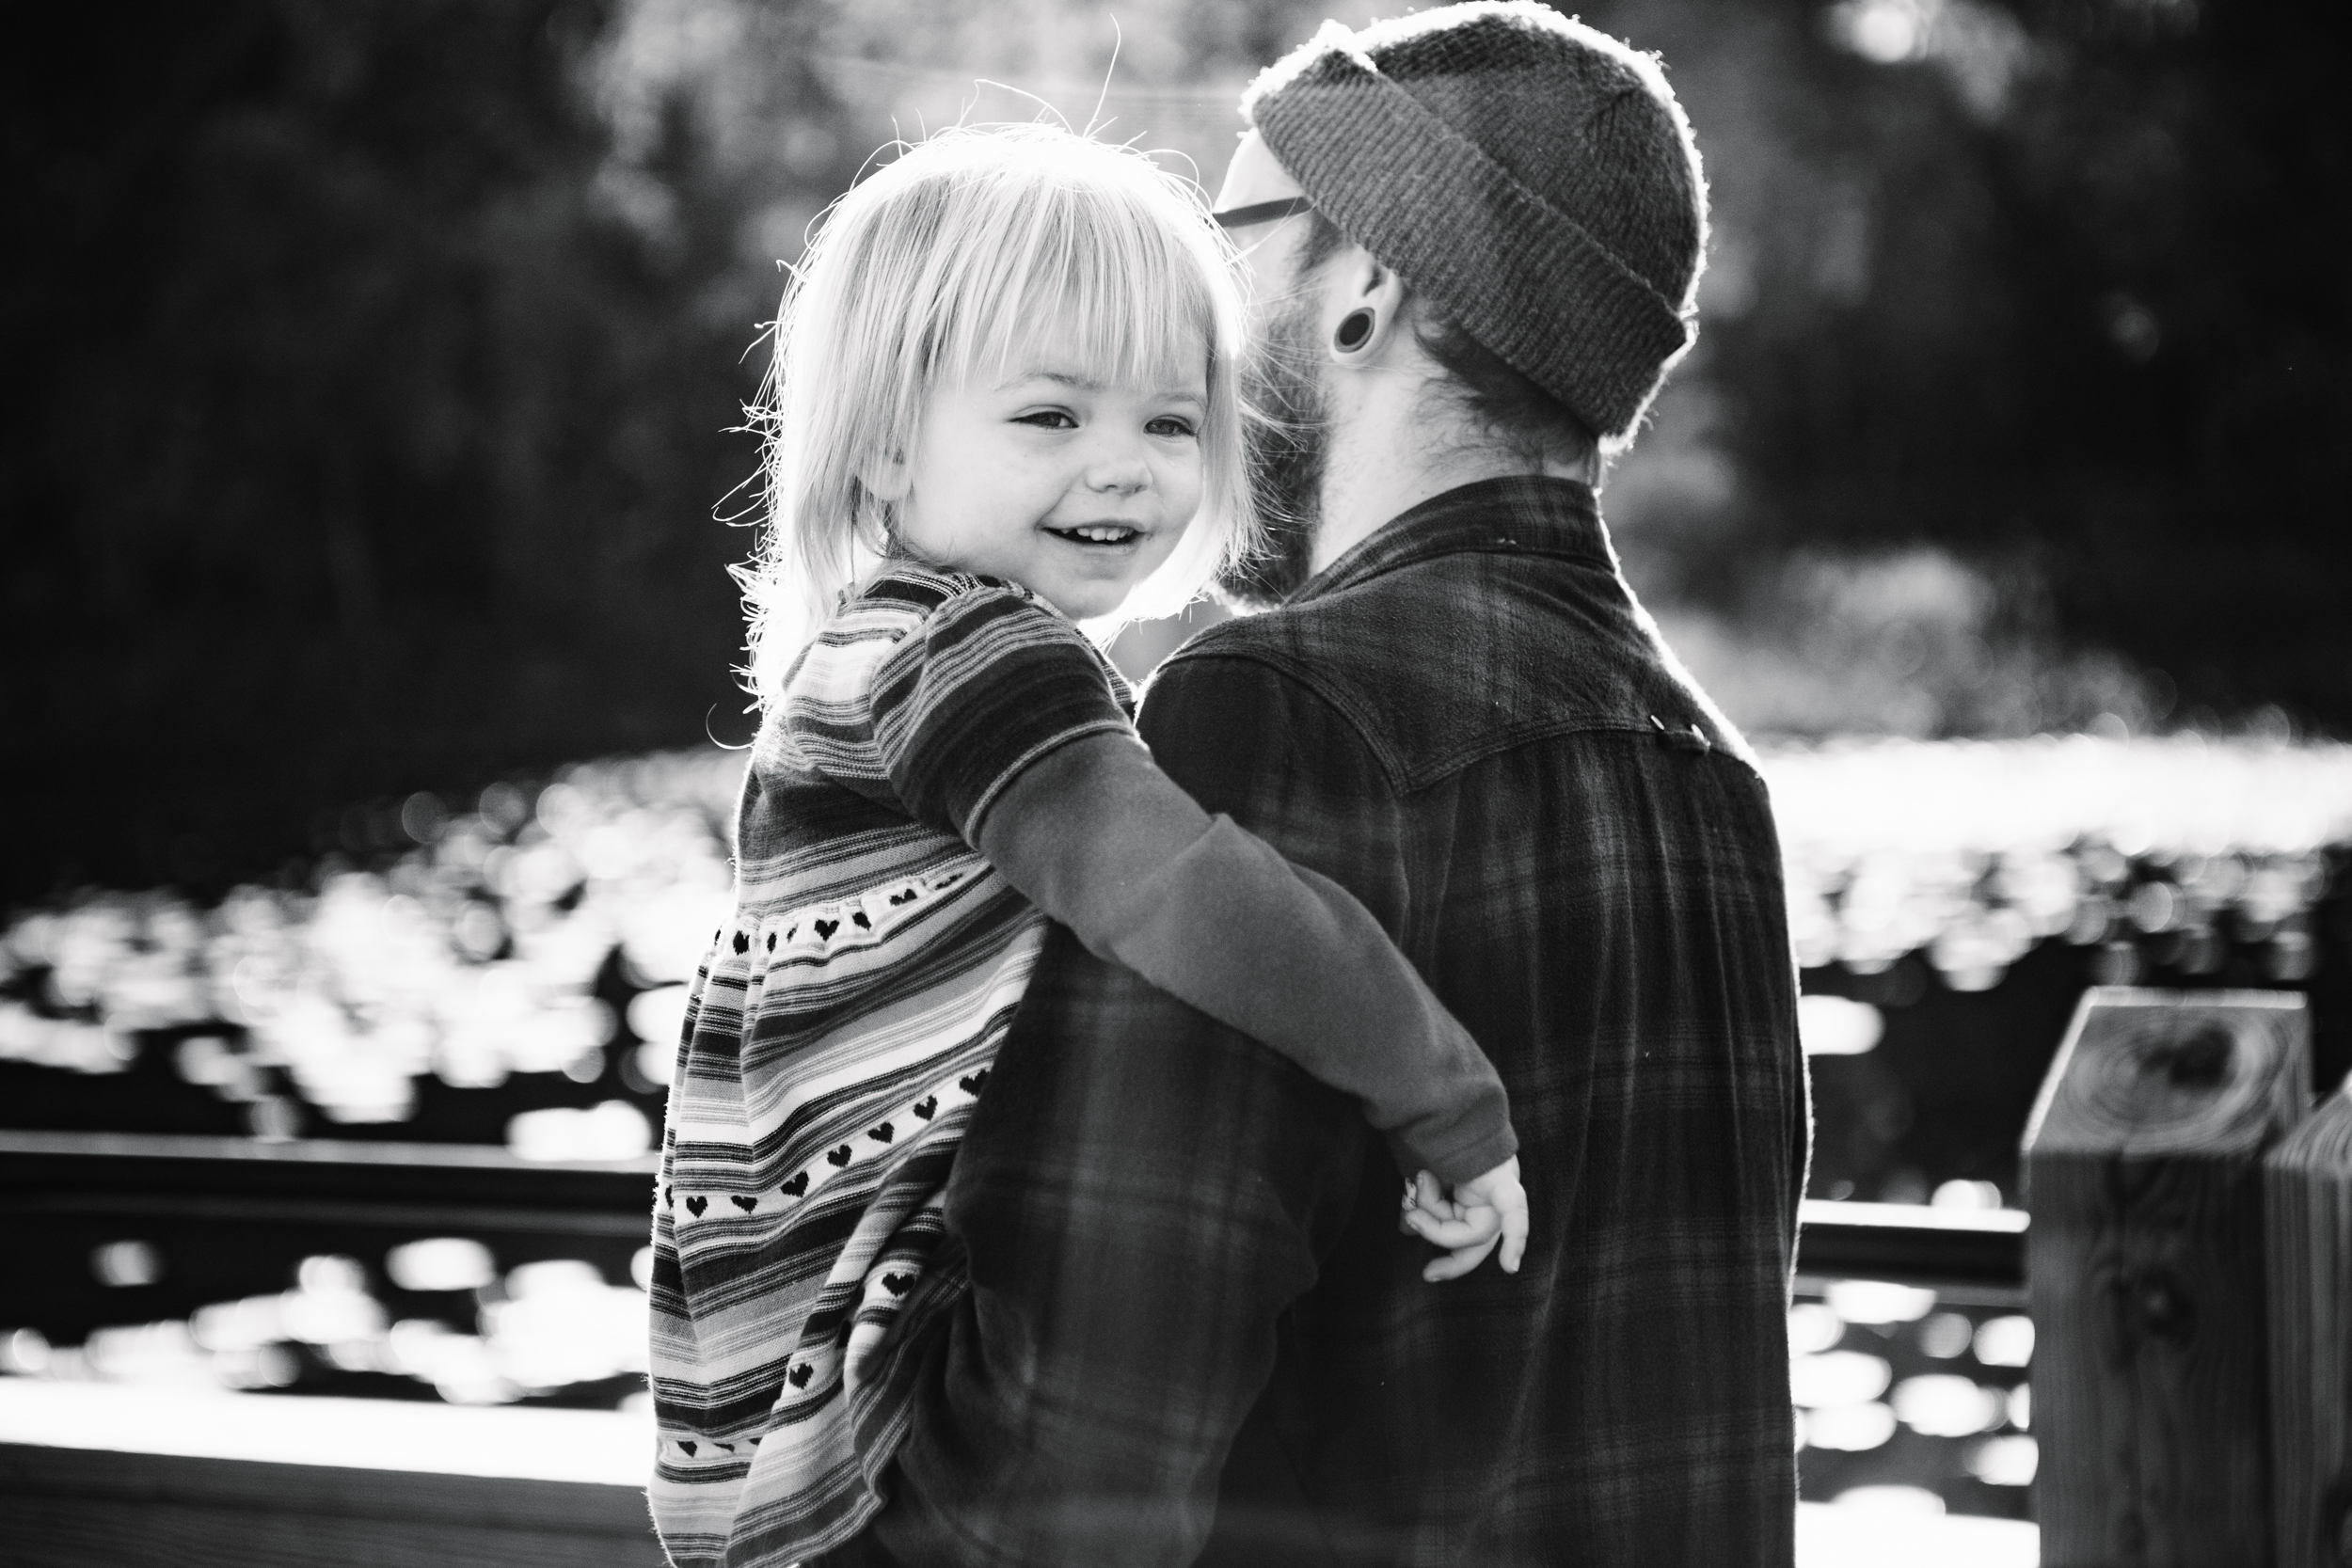 Smiling toddler in dads arms